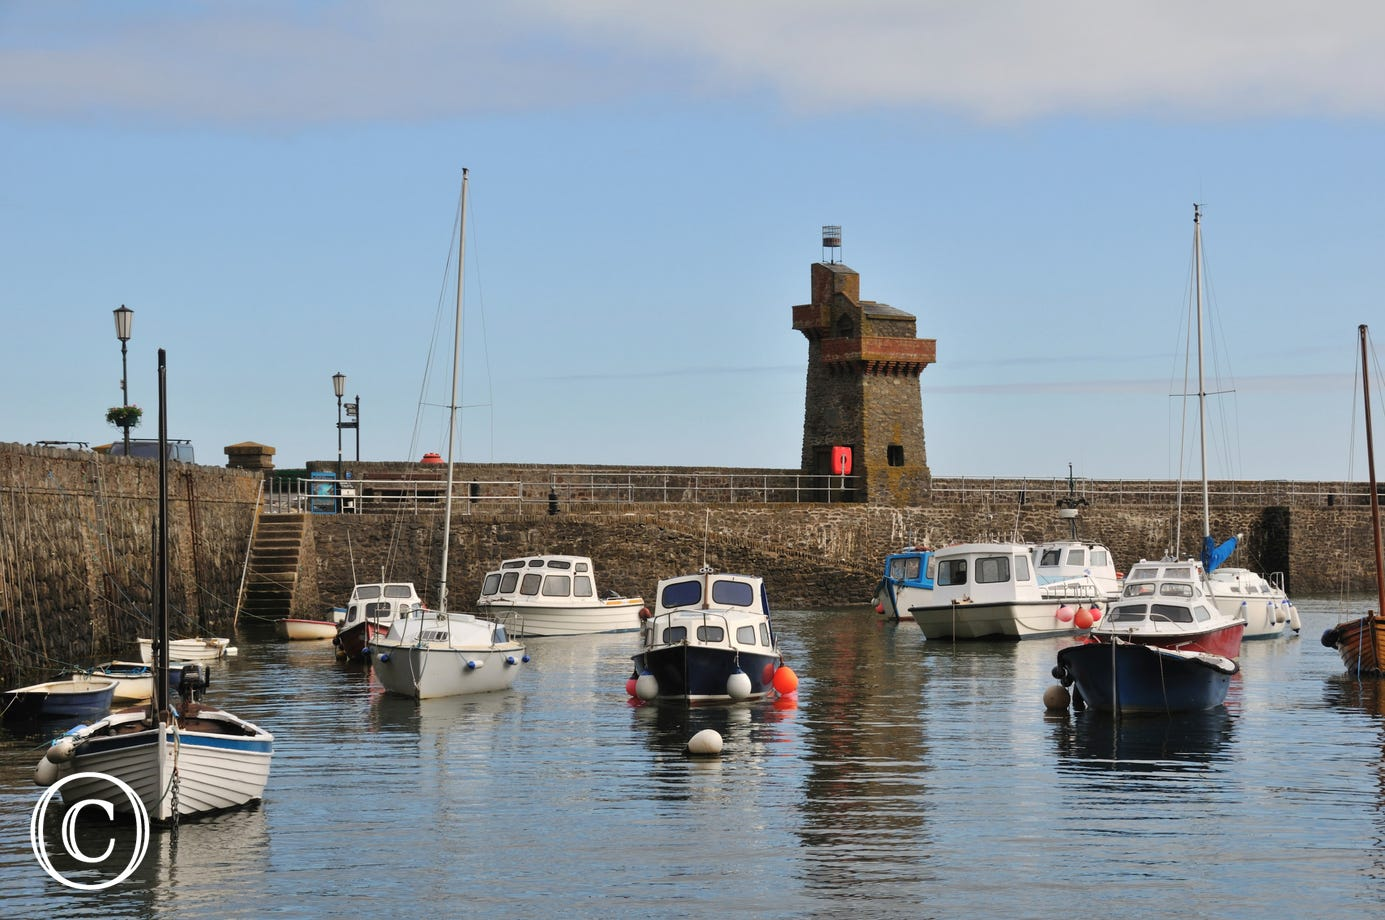 Lynmouth harbour is just a 5 minute walk away